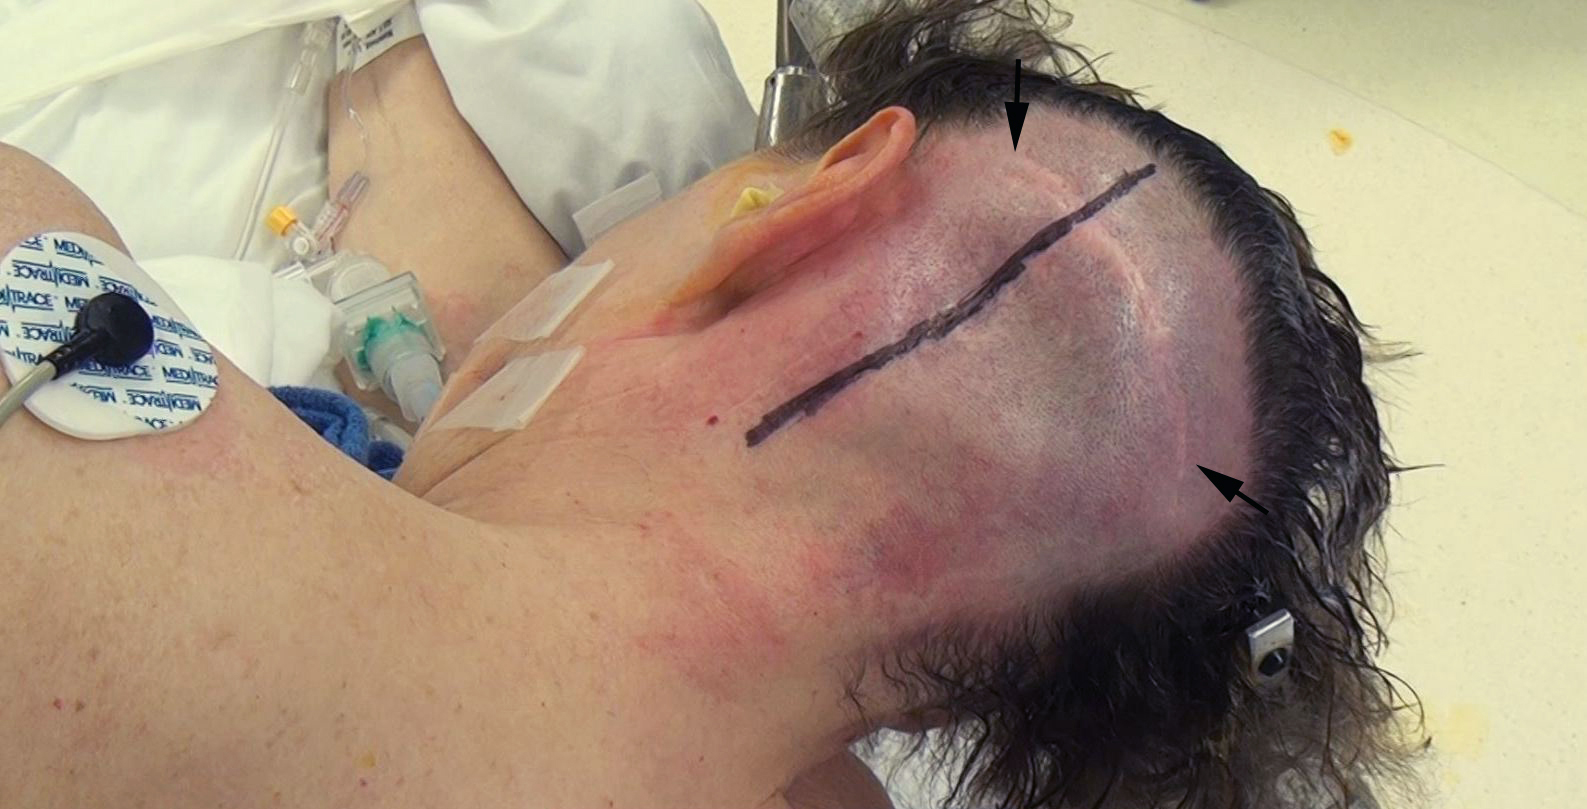 Figure 9: This patient underwent a third operation for a recurrent giant cerebellopontine angle hemangioblastoma. Previous surgeons had used perpendicular incisions (note the horizontal incision that is marked with arrows). For the third surgery, only the horizontal limb was used to maximize vascular support for wound healing.